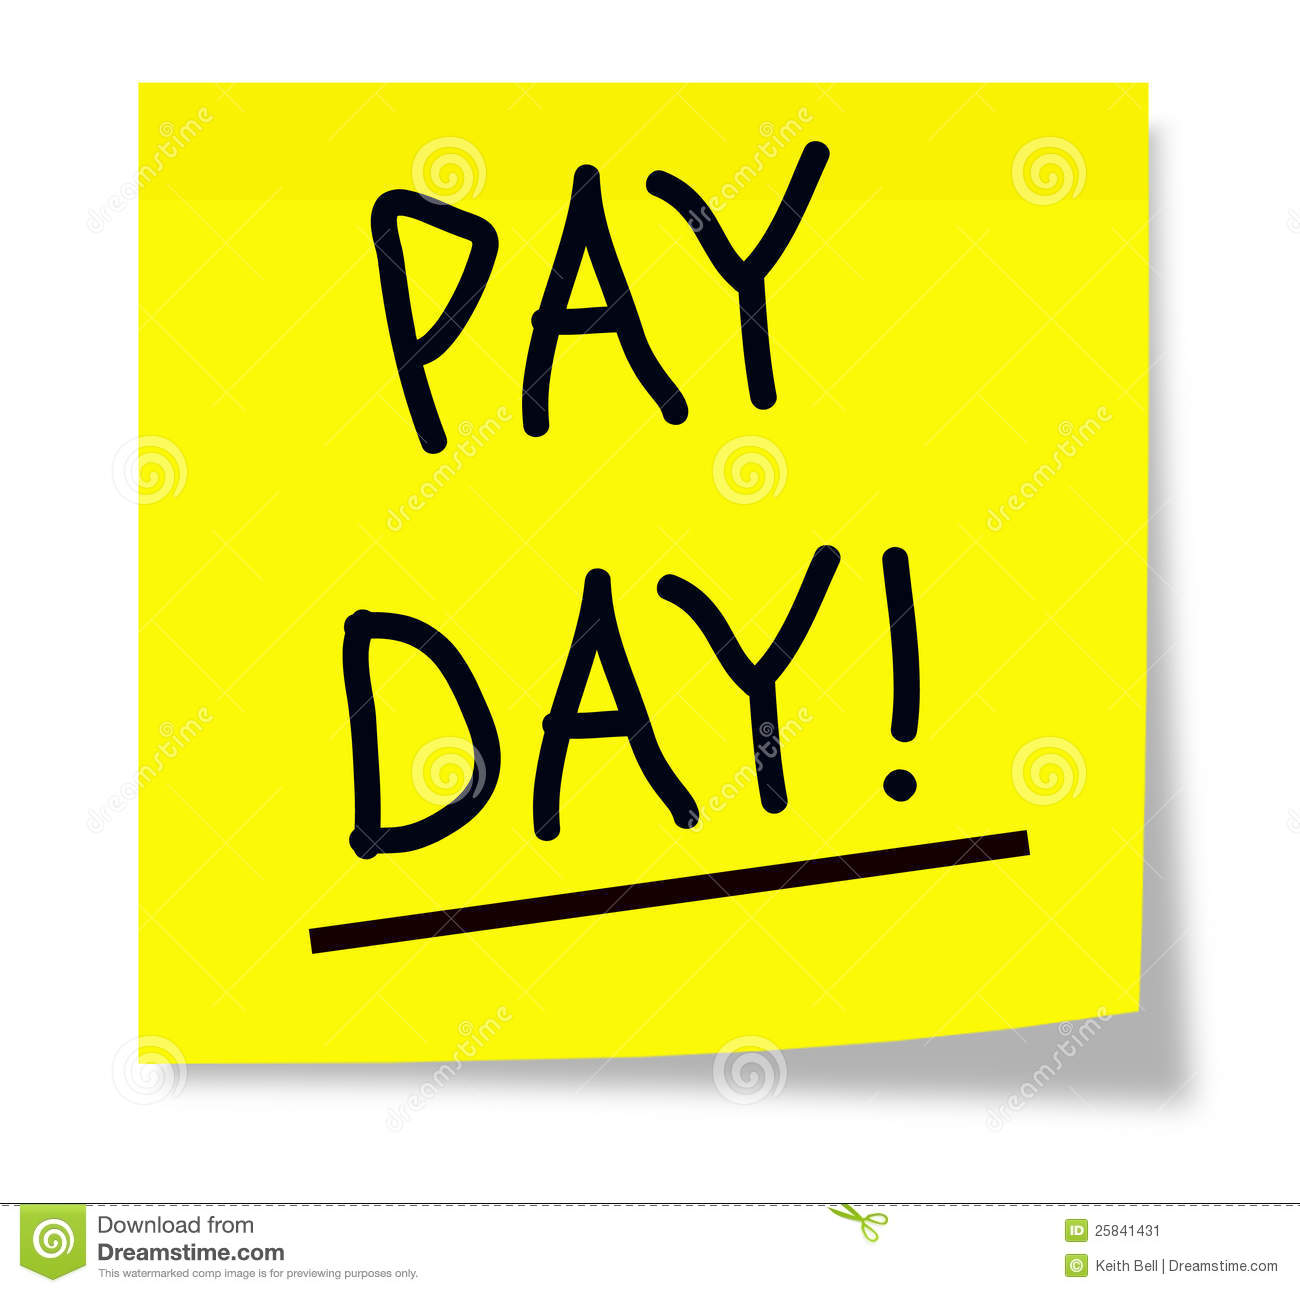 sticky note with the words Pay Day! underlined and written in black